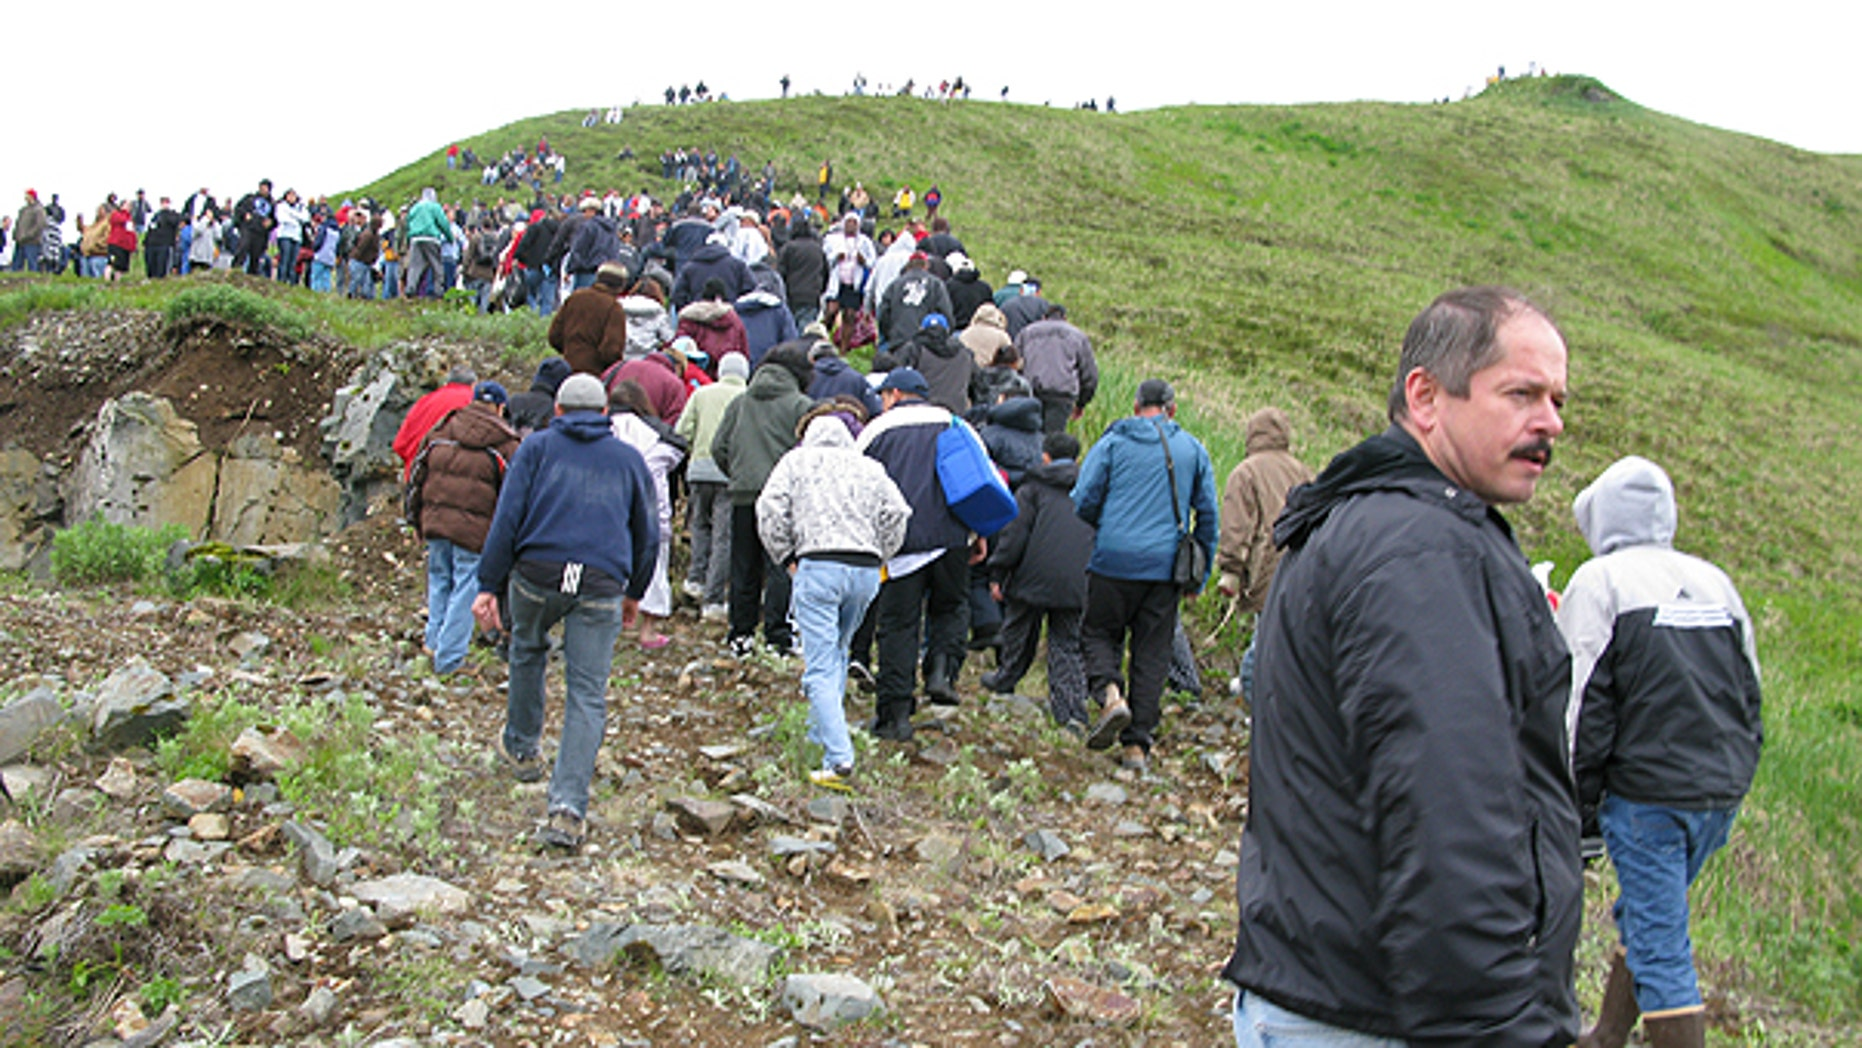 June 23: Fish processing workers and local residents head up the hill after a tsunami warning was issued in Unalaska's Dutch Harbor, in Alaska's Aleutian Islands.